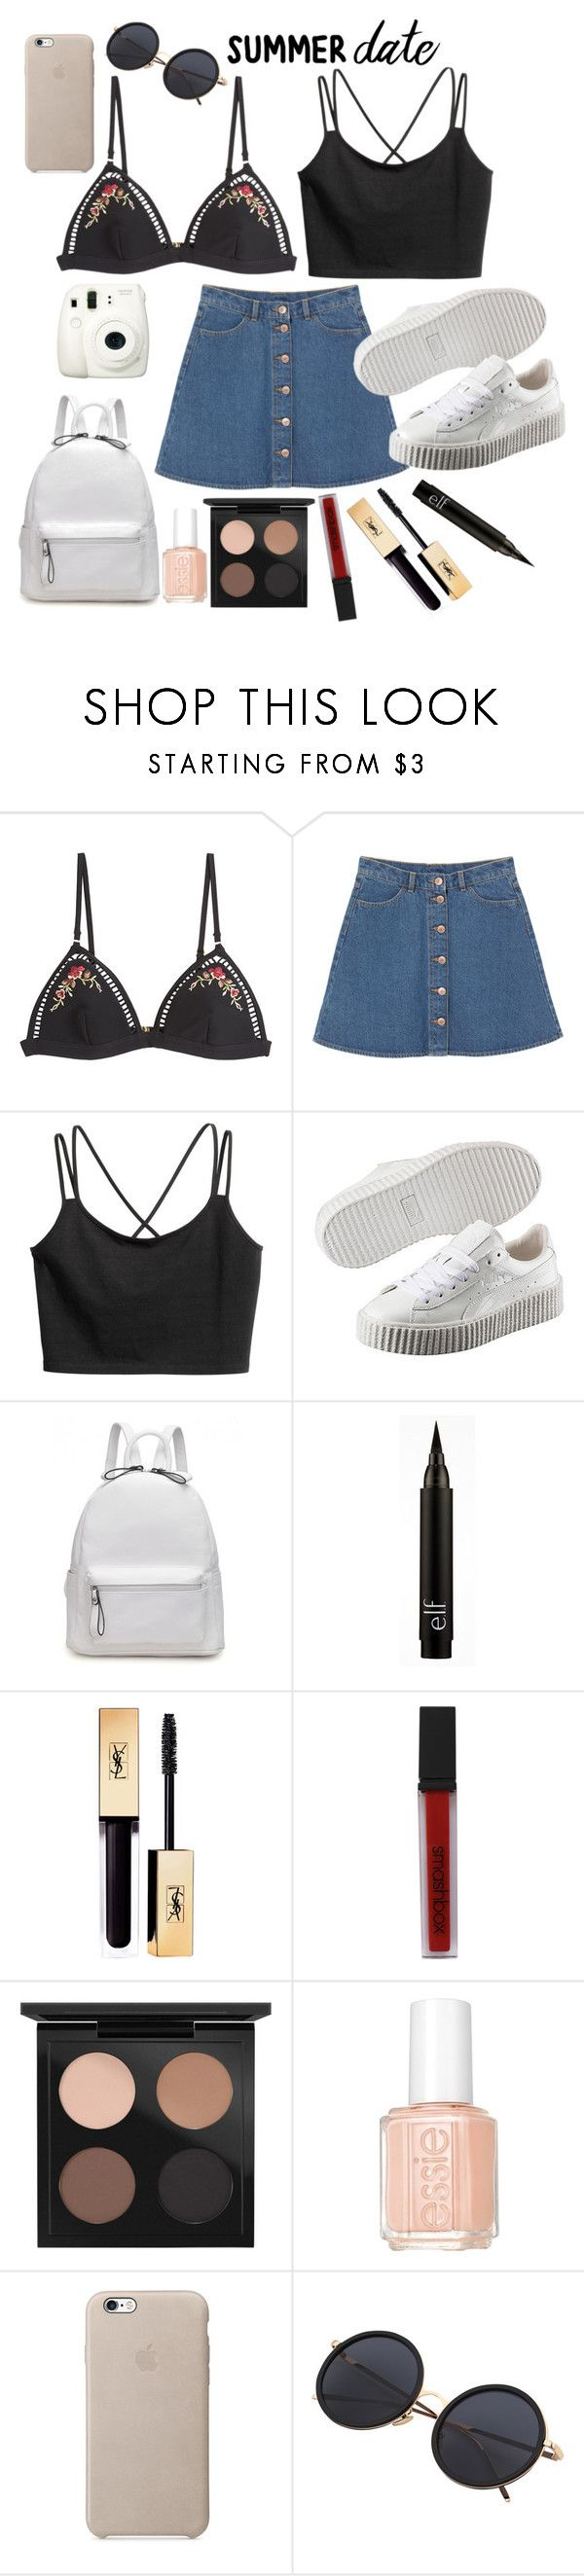 """Sin título #244"" by camilazeballo on Polyvore featuring moda, Zimmermann, Fuji, Monki, Puma, Smashbox, MAC Cosmetics y Essie"